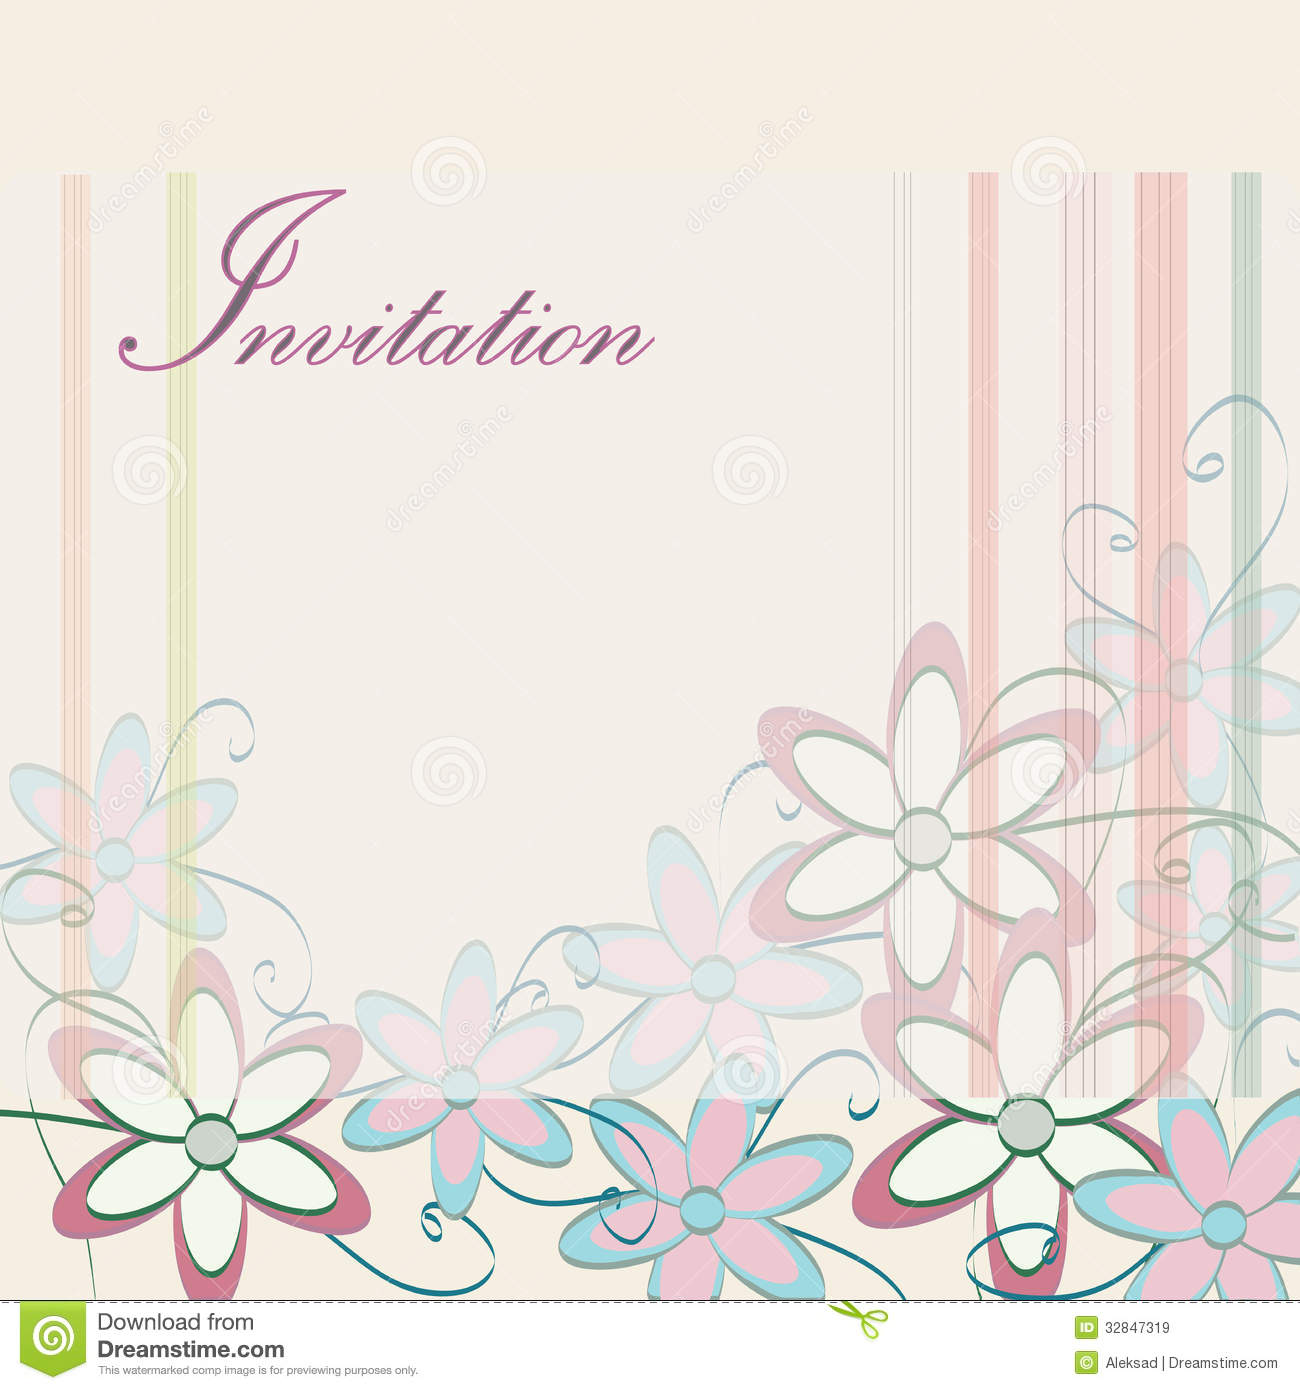 Party invitation card design northurthwall party invitation card design stopboris Choice Image